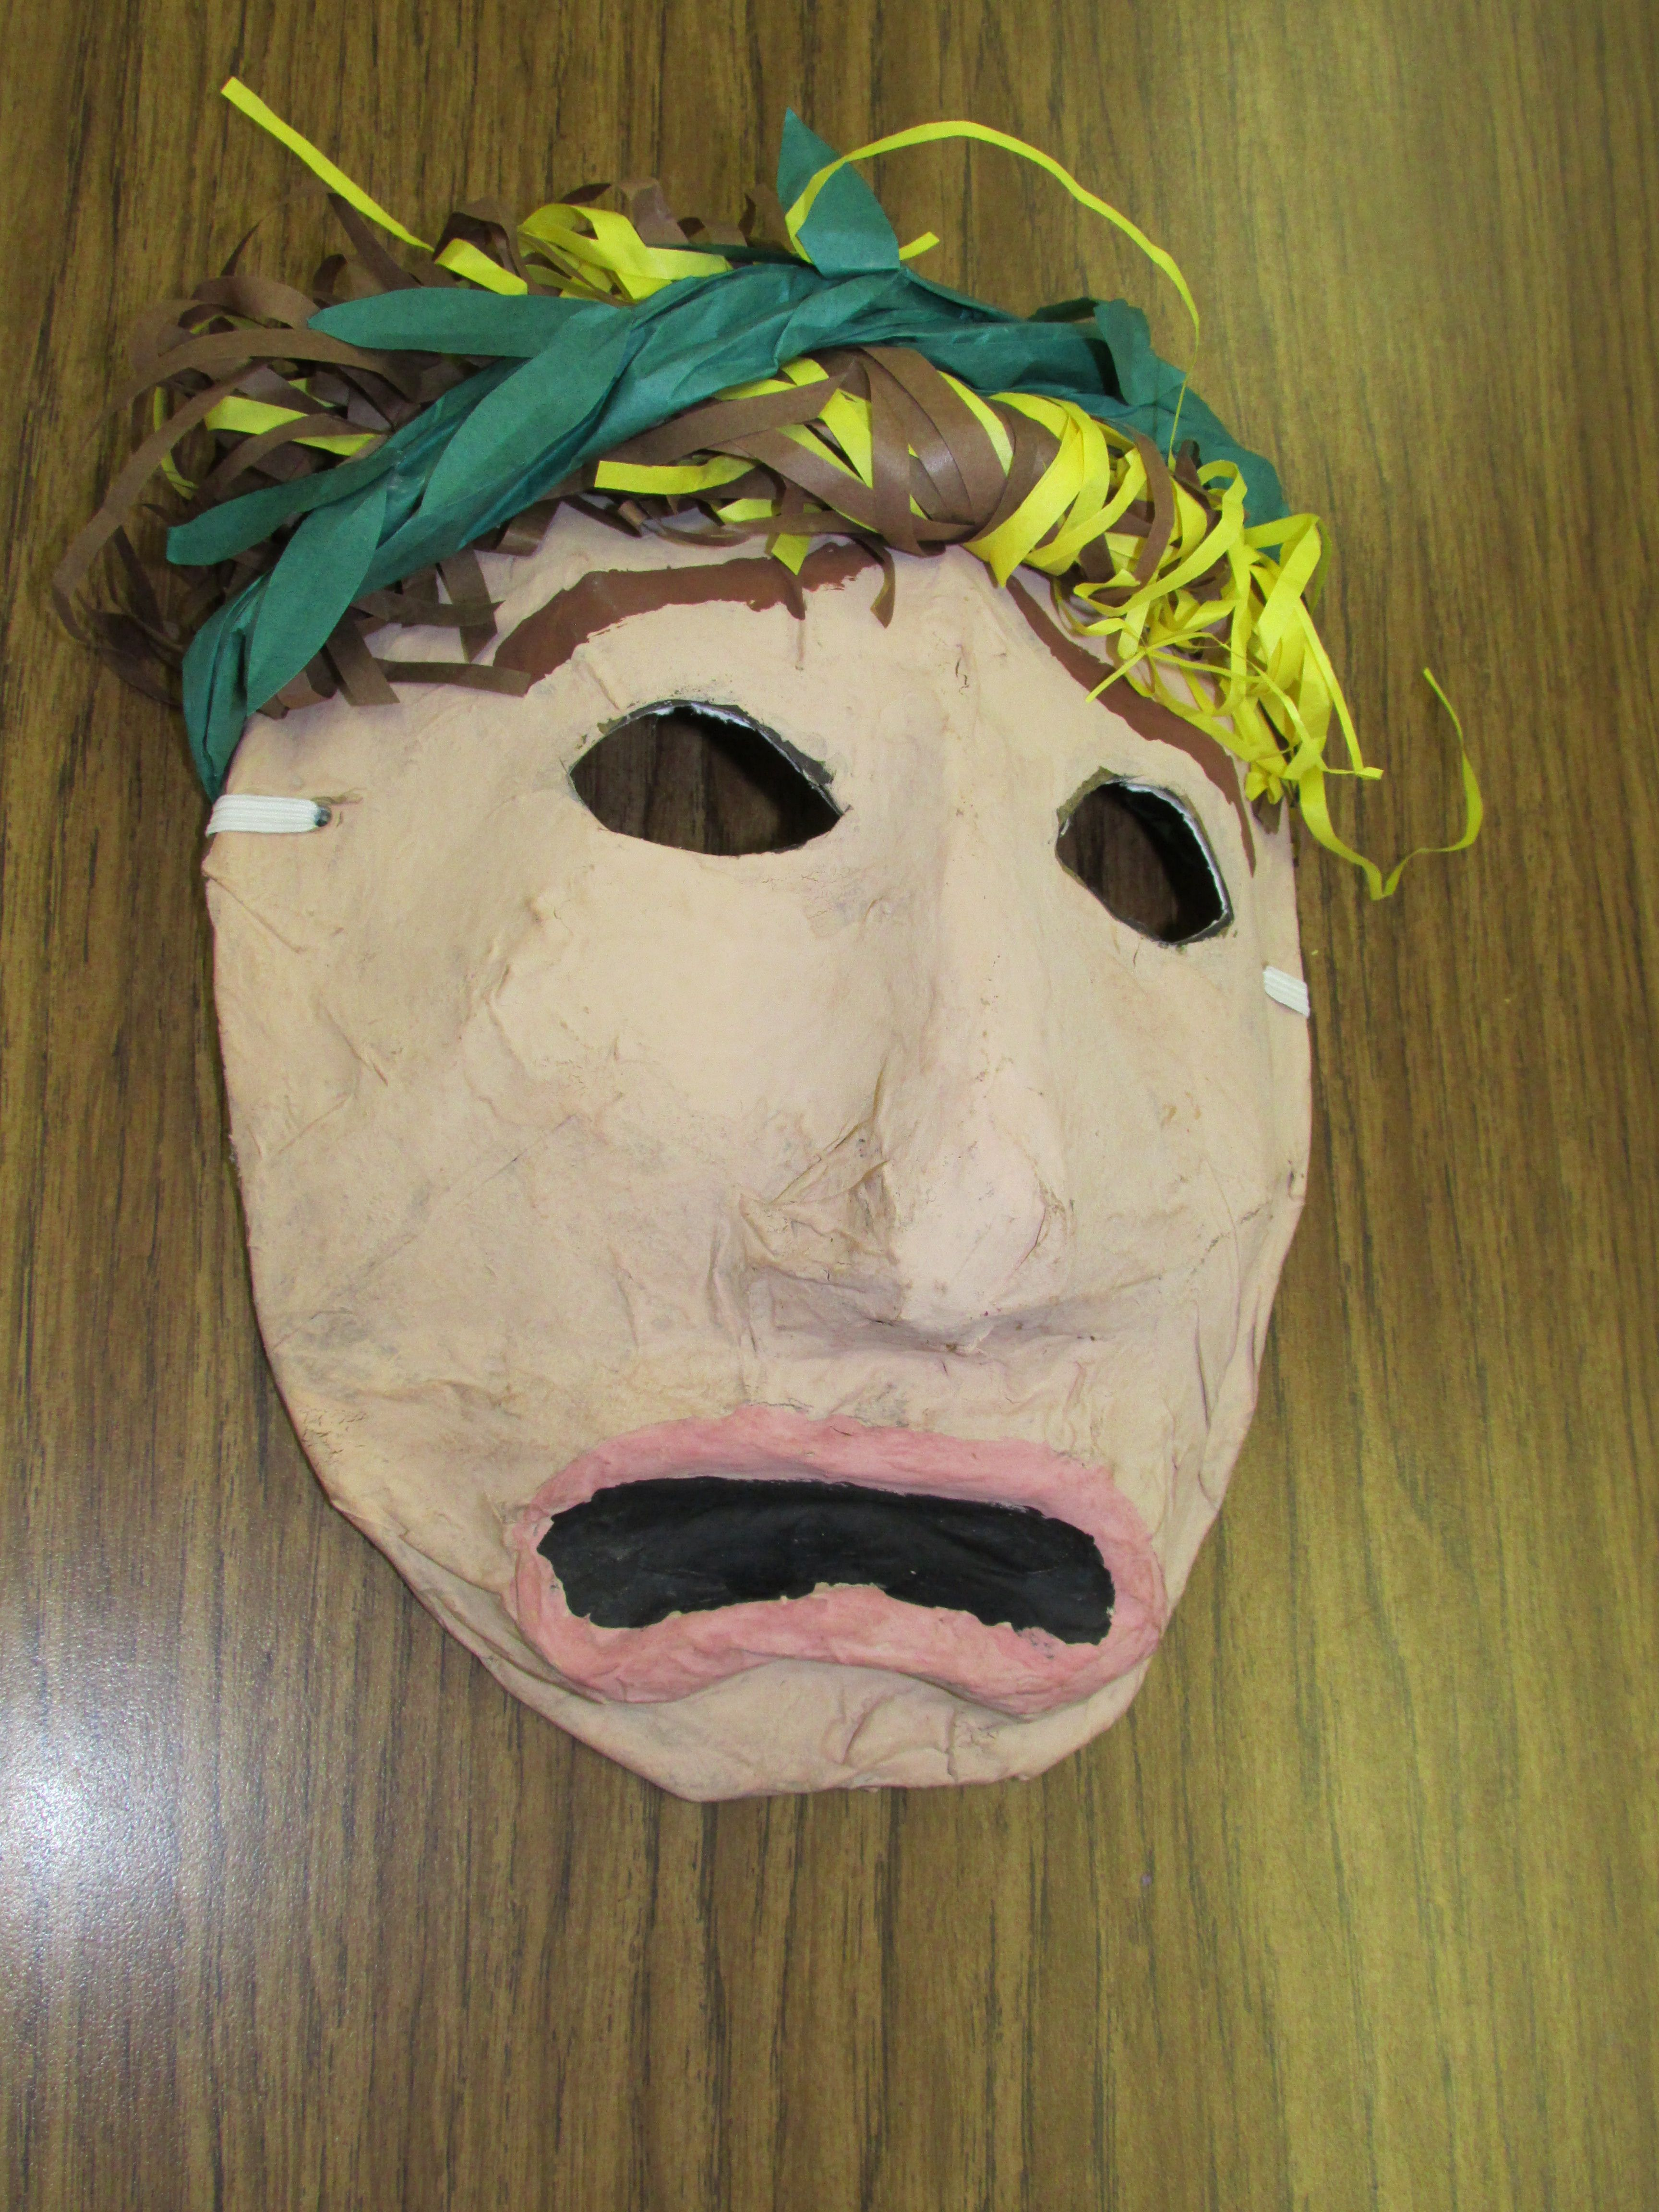 Paper Mache Greek Drama Mask By A 3rd Grader Lesson By